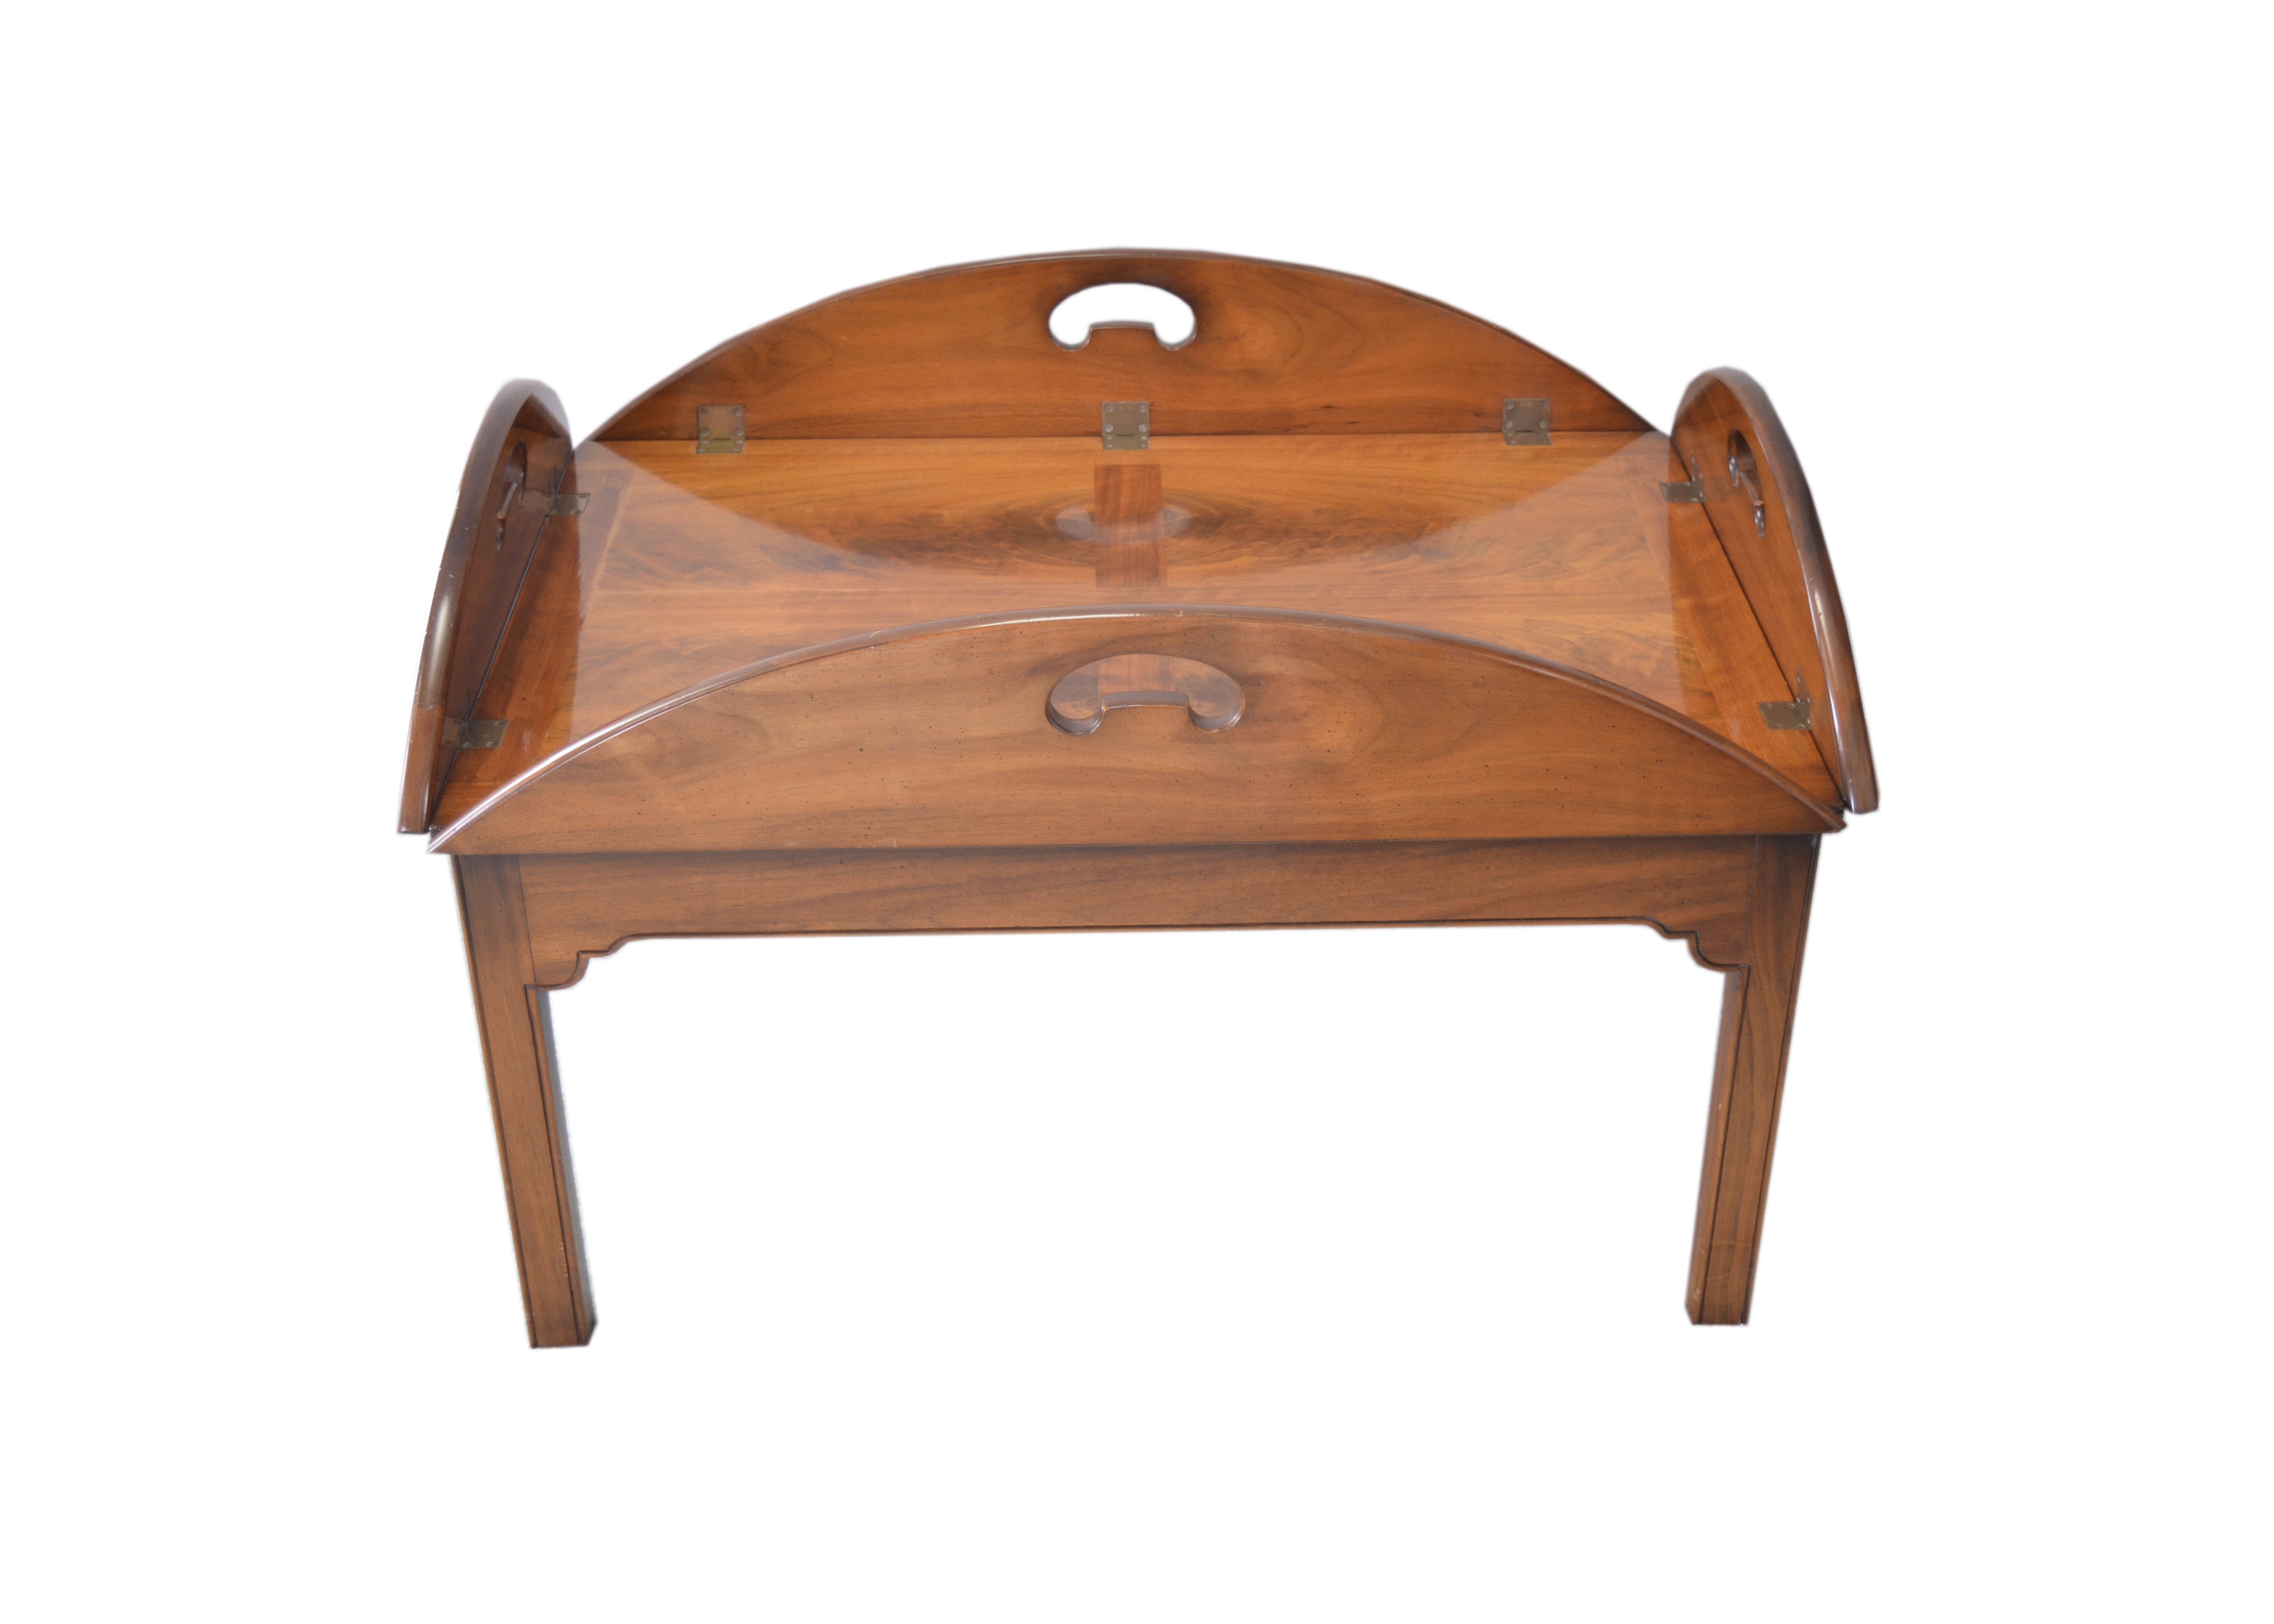 Good Wright Table Company Butleru0027s Tray Top Table ...